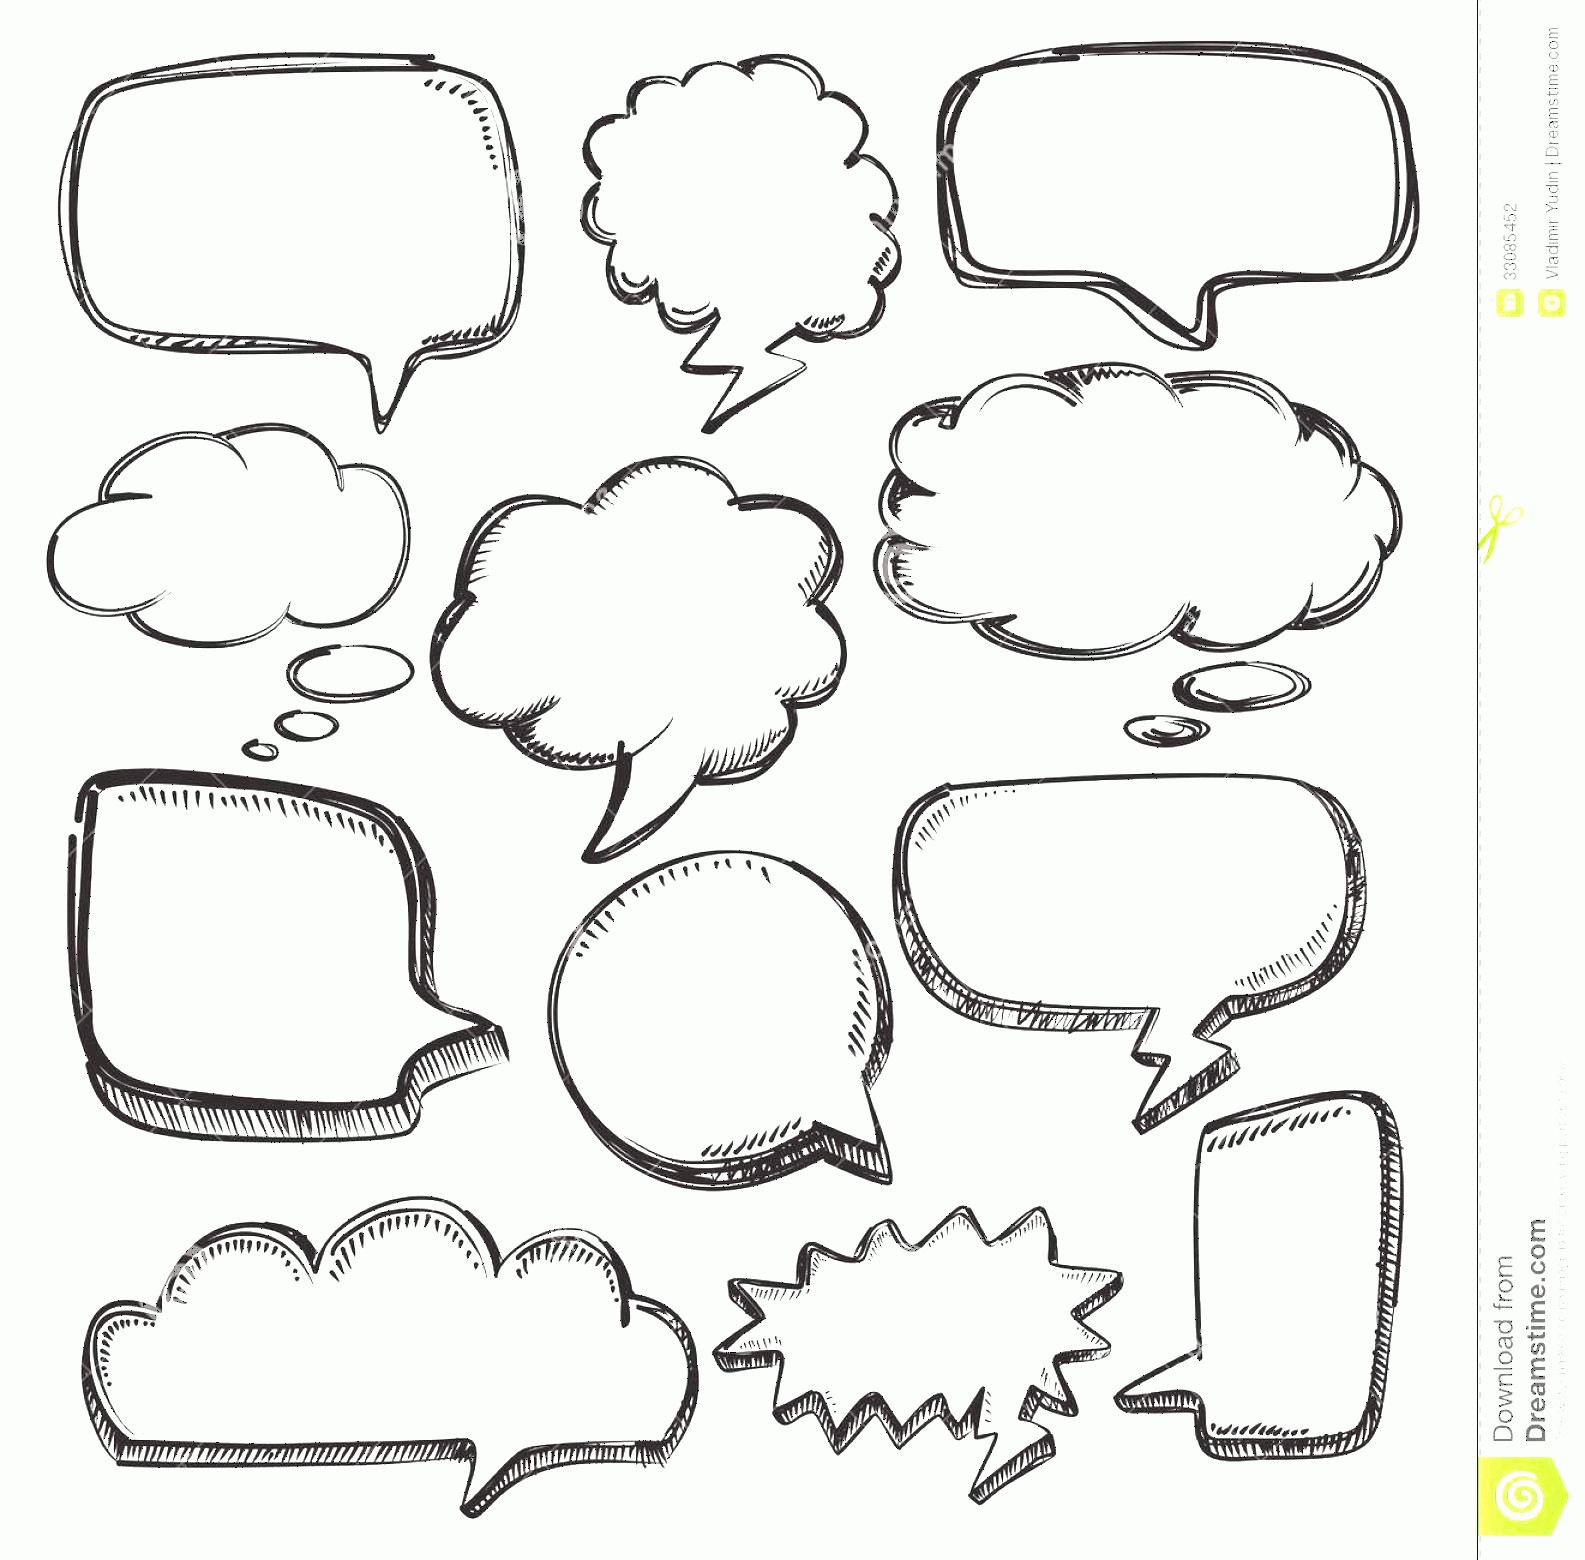 Thought Bubble Vector Sketch: Stock Photography Speech Bubbles Vector Hand Drawn White Image